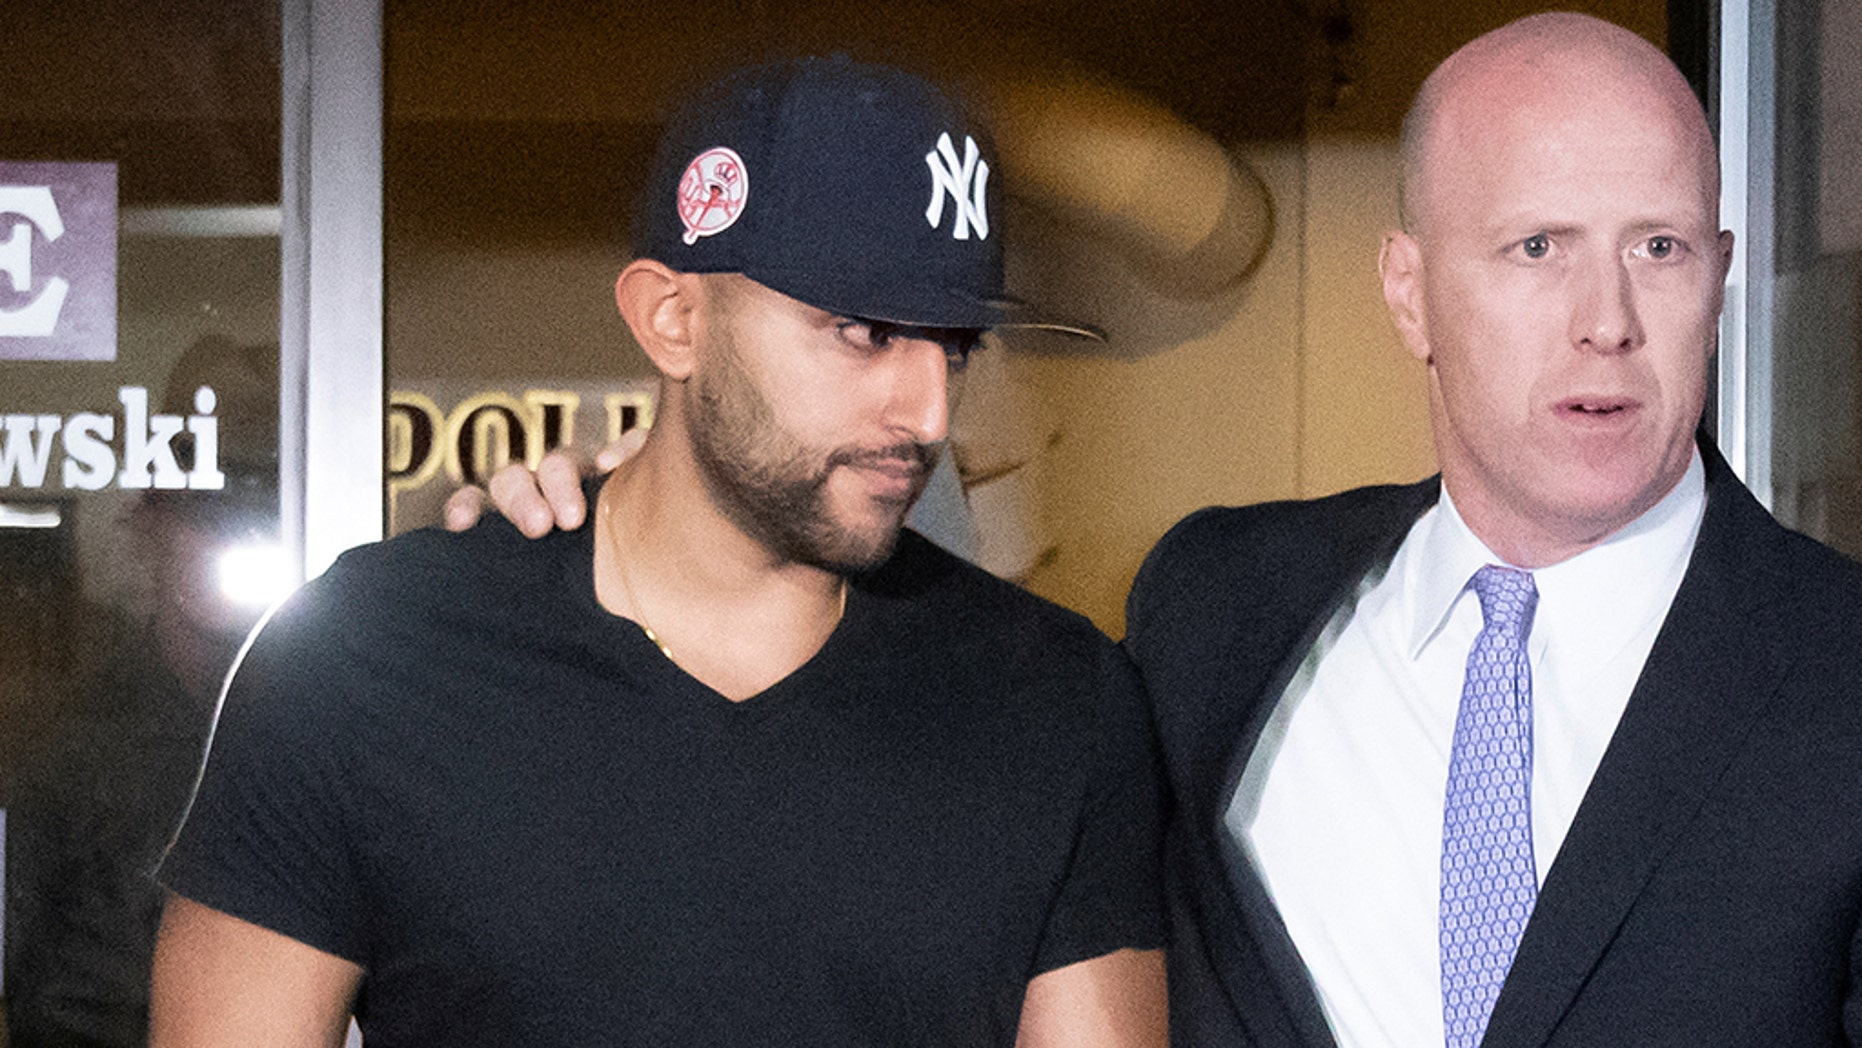 Nauman Hussain, left, operator of a limousine company that owned the vehicle involved in a crash that killed 20 people in upstate New York, leaves with his lawyer Lee Kindlon after posting bond at Cobleskill Town Court in Cobleskill, N.Y., Oct. 10, 2018. (Reuters)